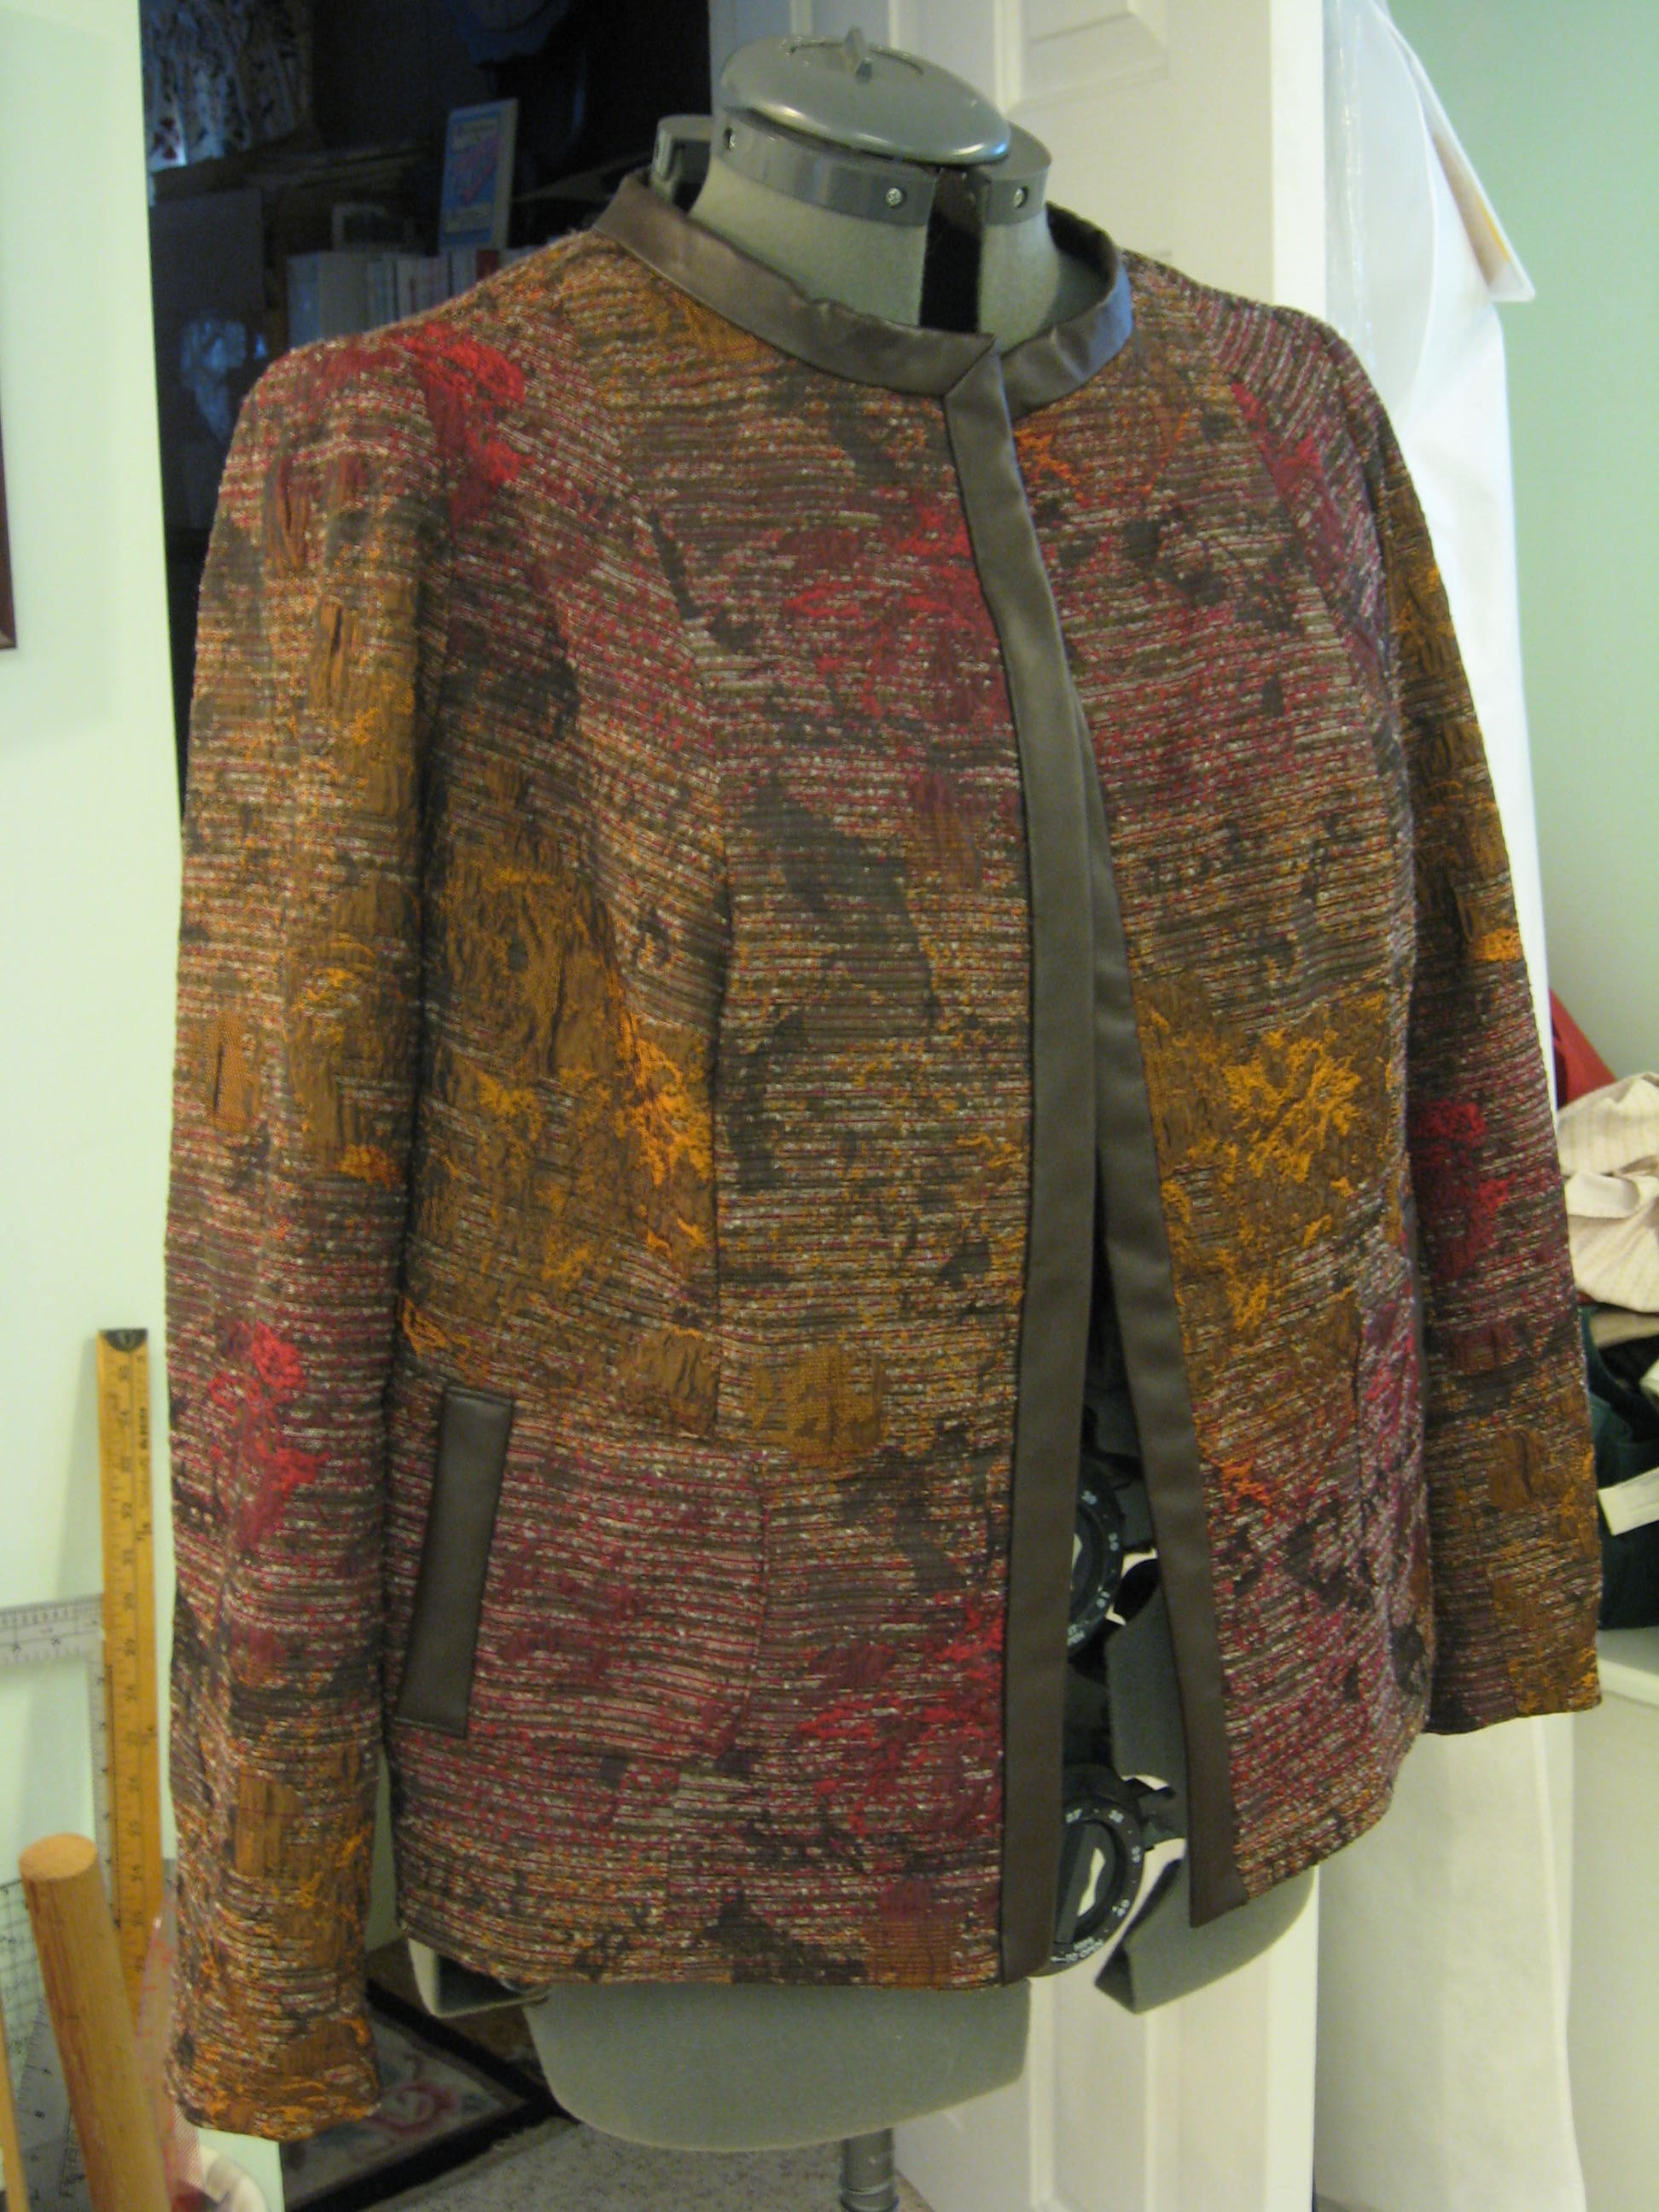 Brocade jacket, leather trim